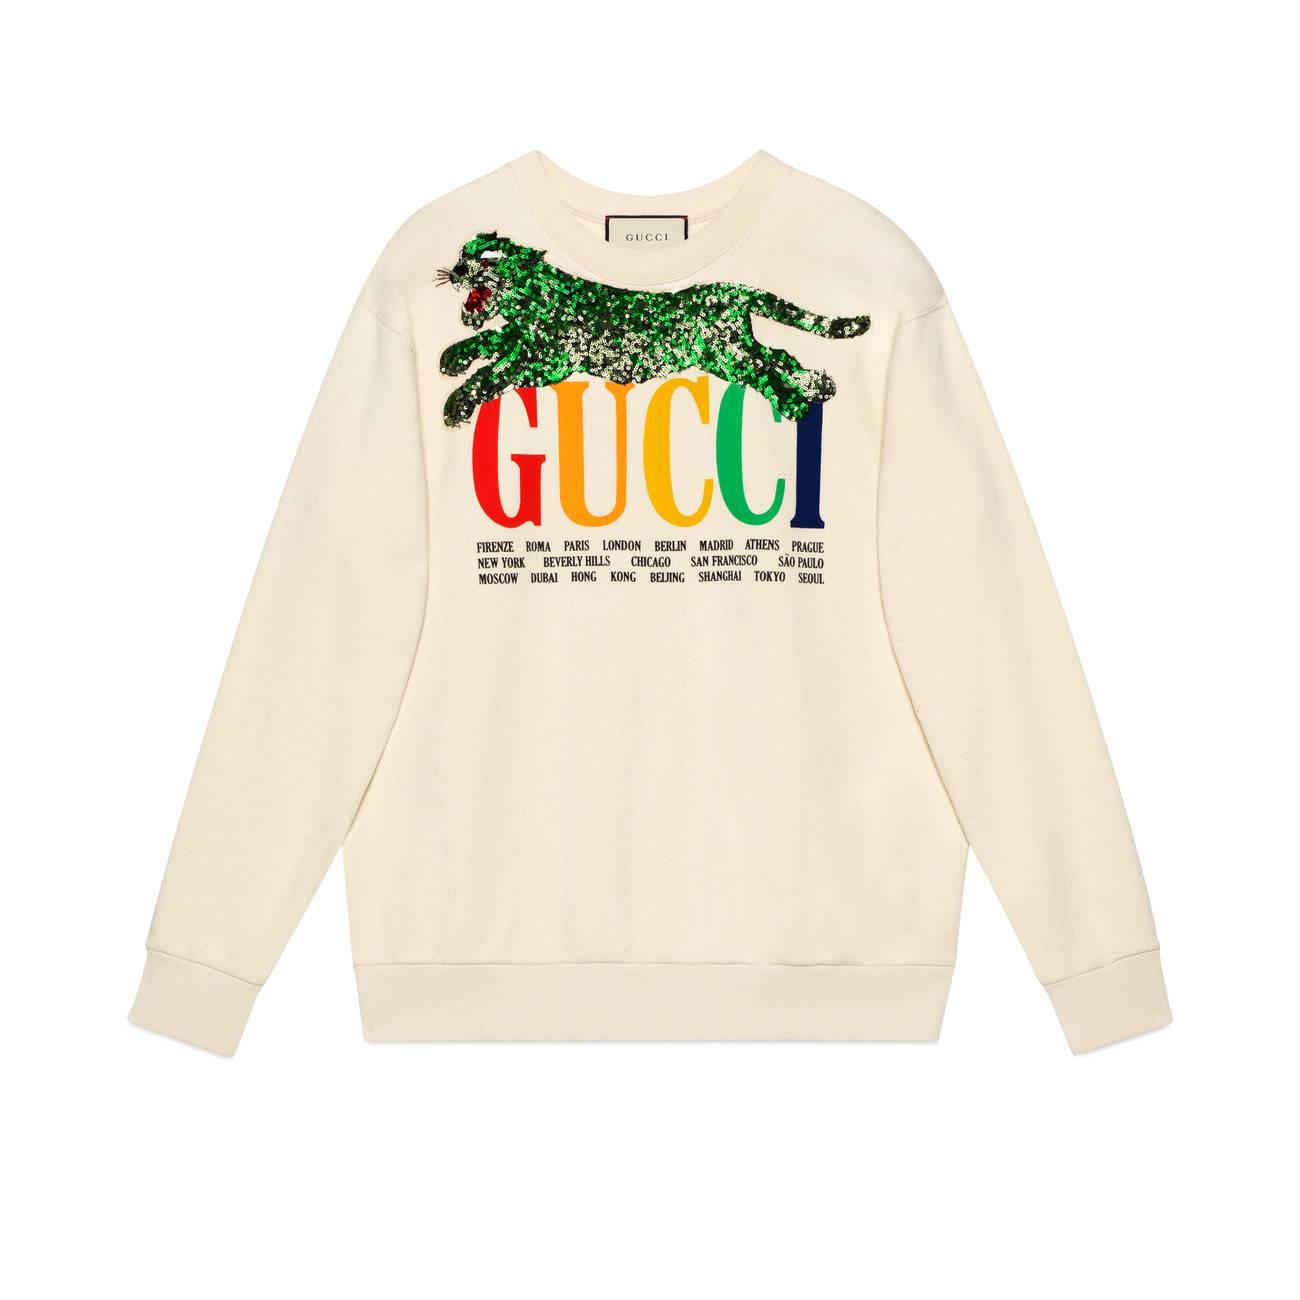 55ab79eede Lyst - Gucci Oversize Sweatshirt With Cities And Tiger in White